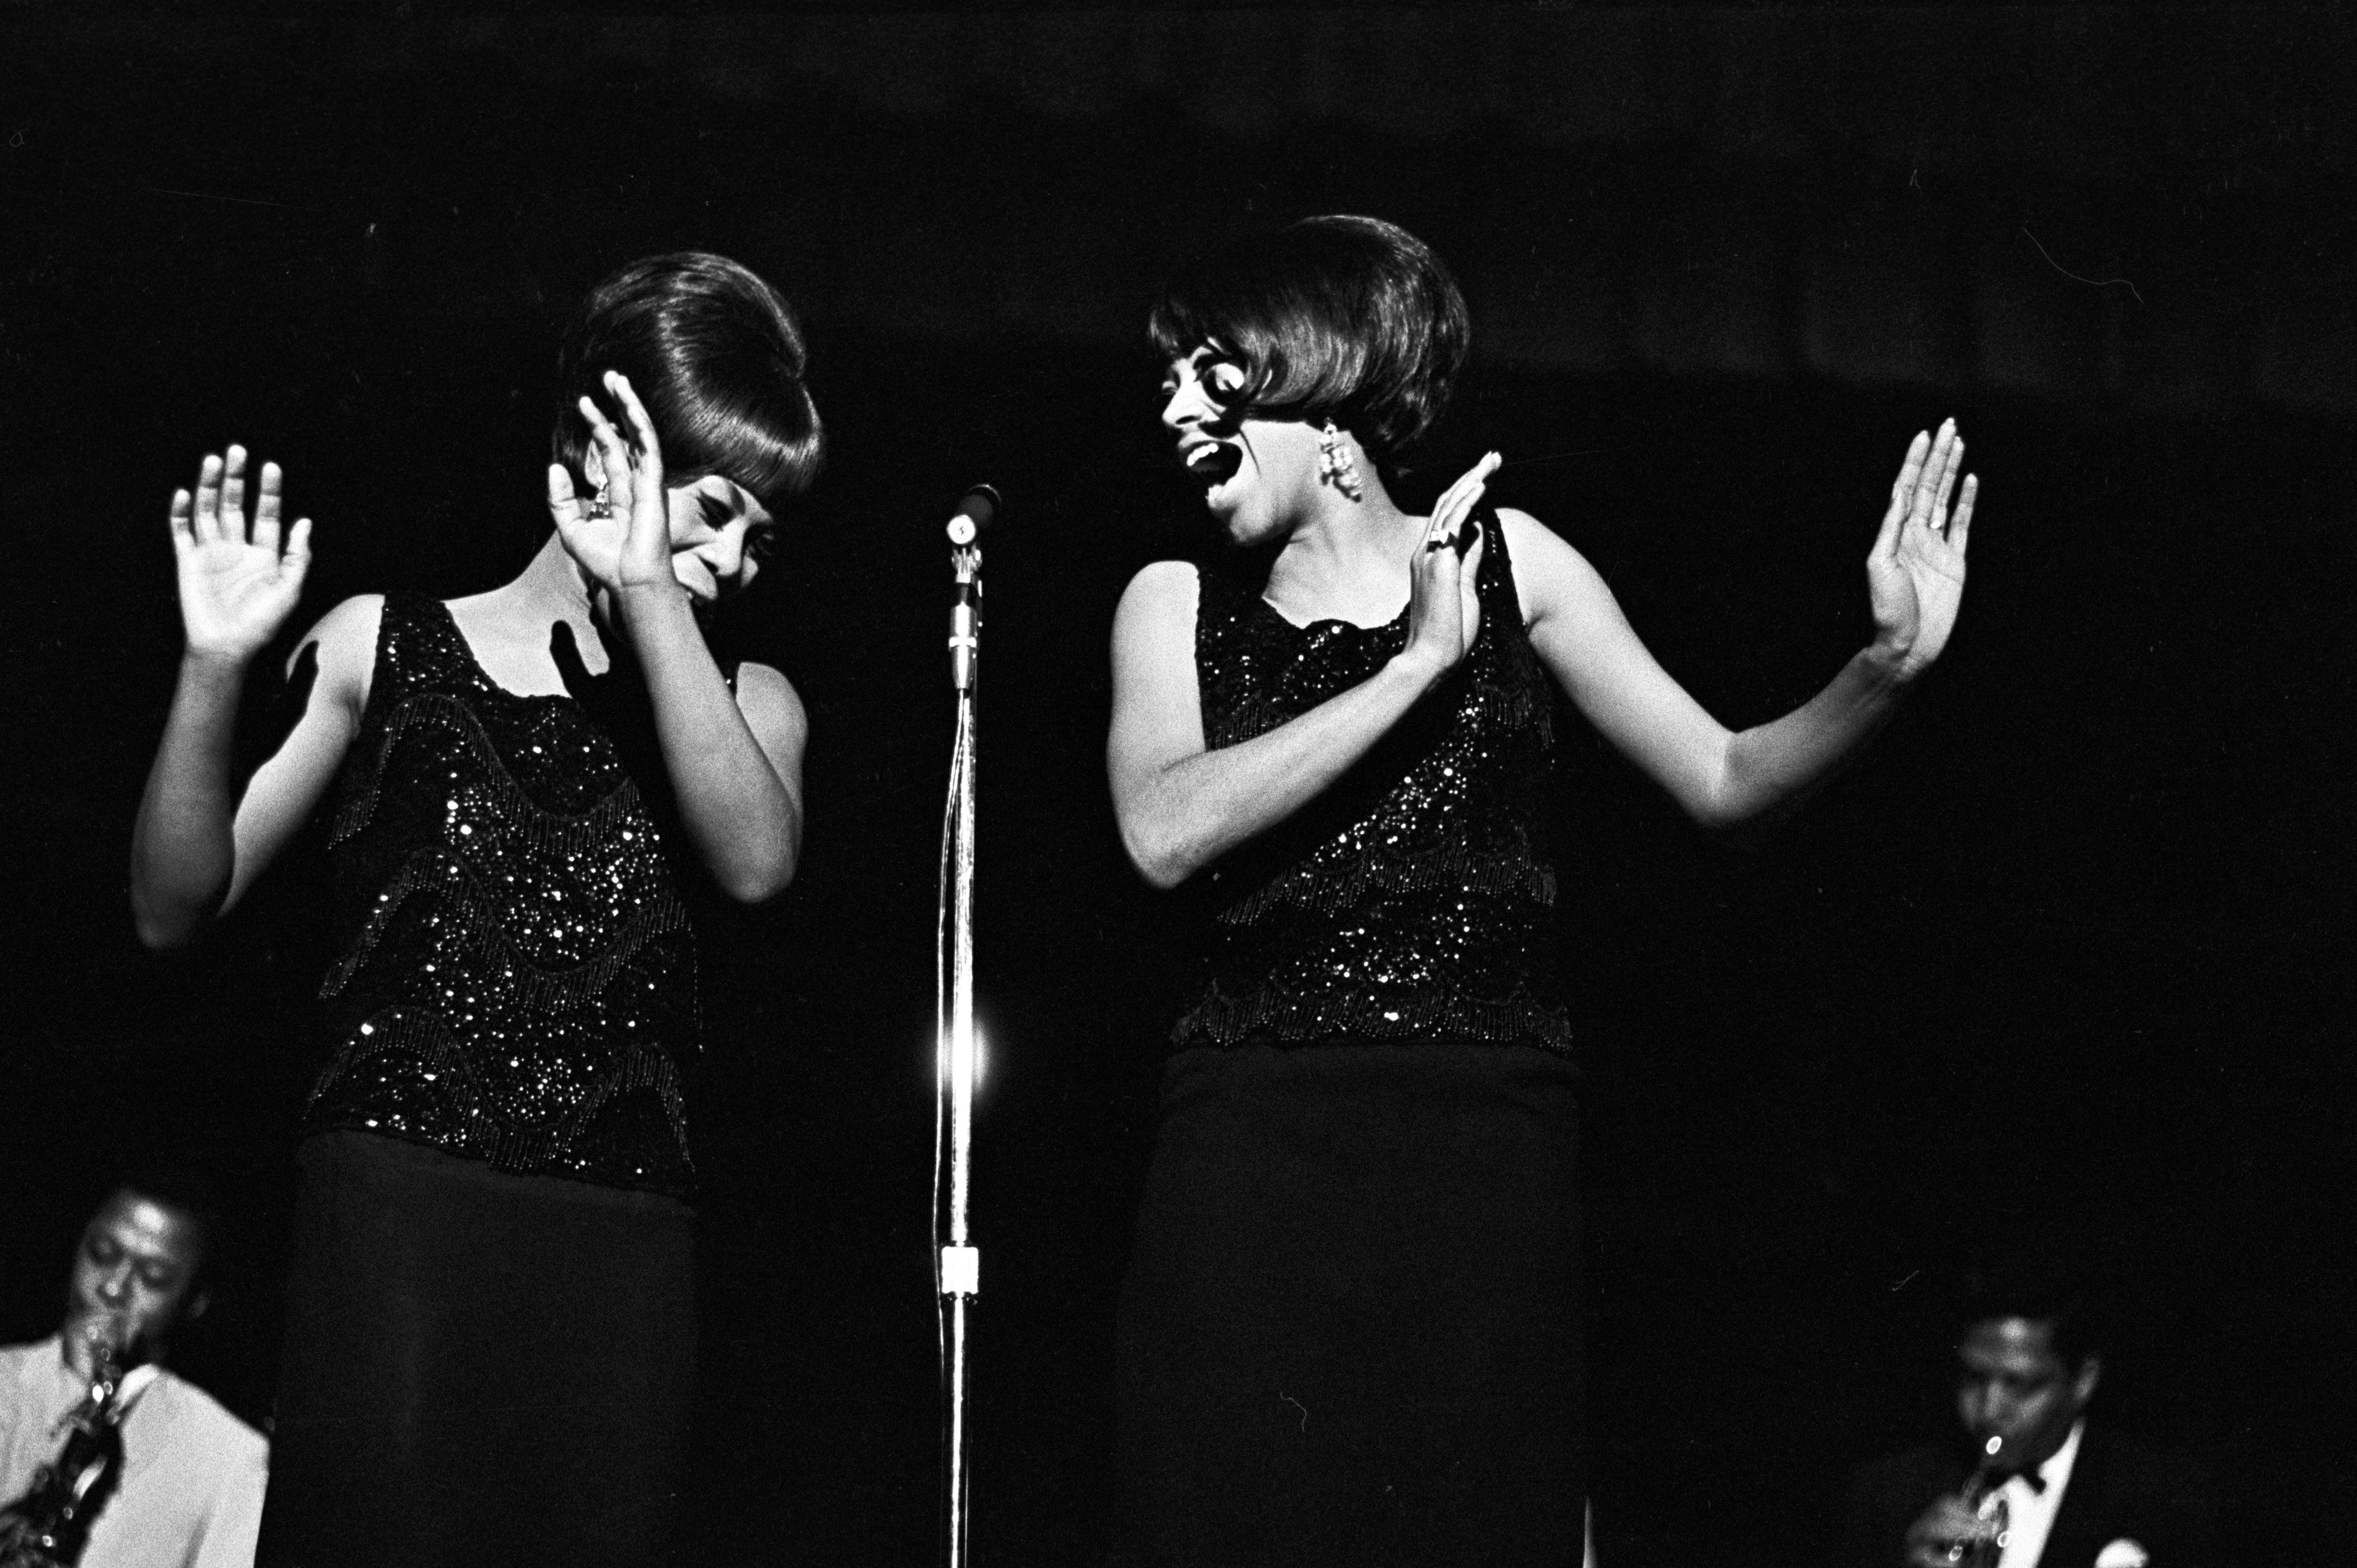 Gladys Horton and Katherine Anderson of the Marvelettes, singing on stage during a performance of the Otis Redding Show.